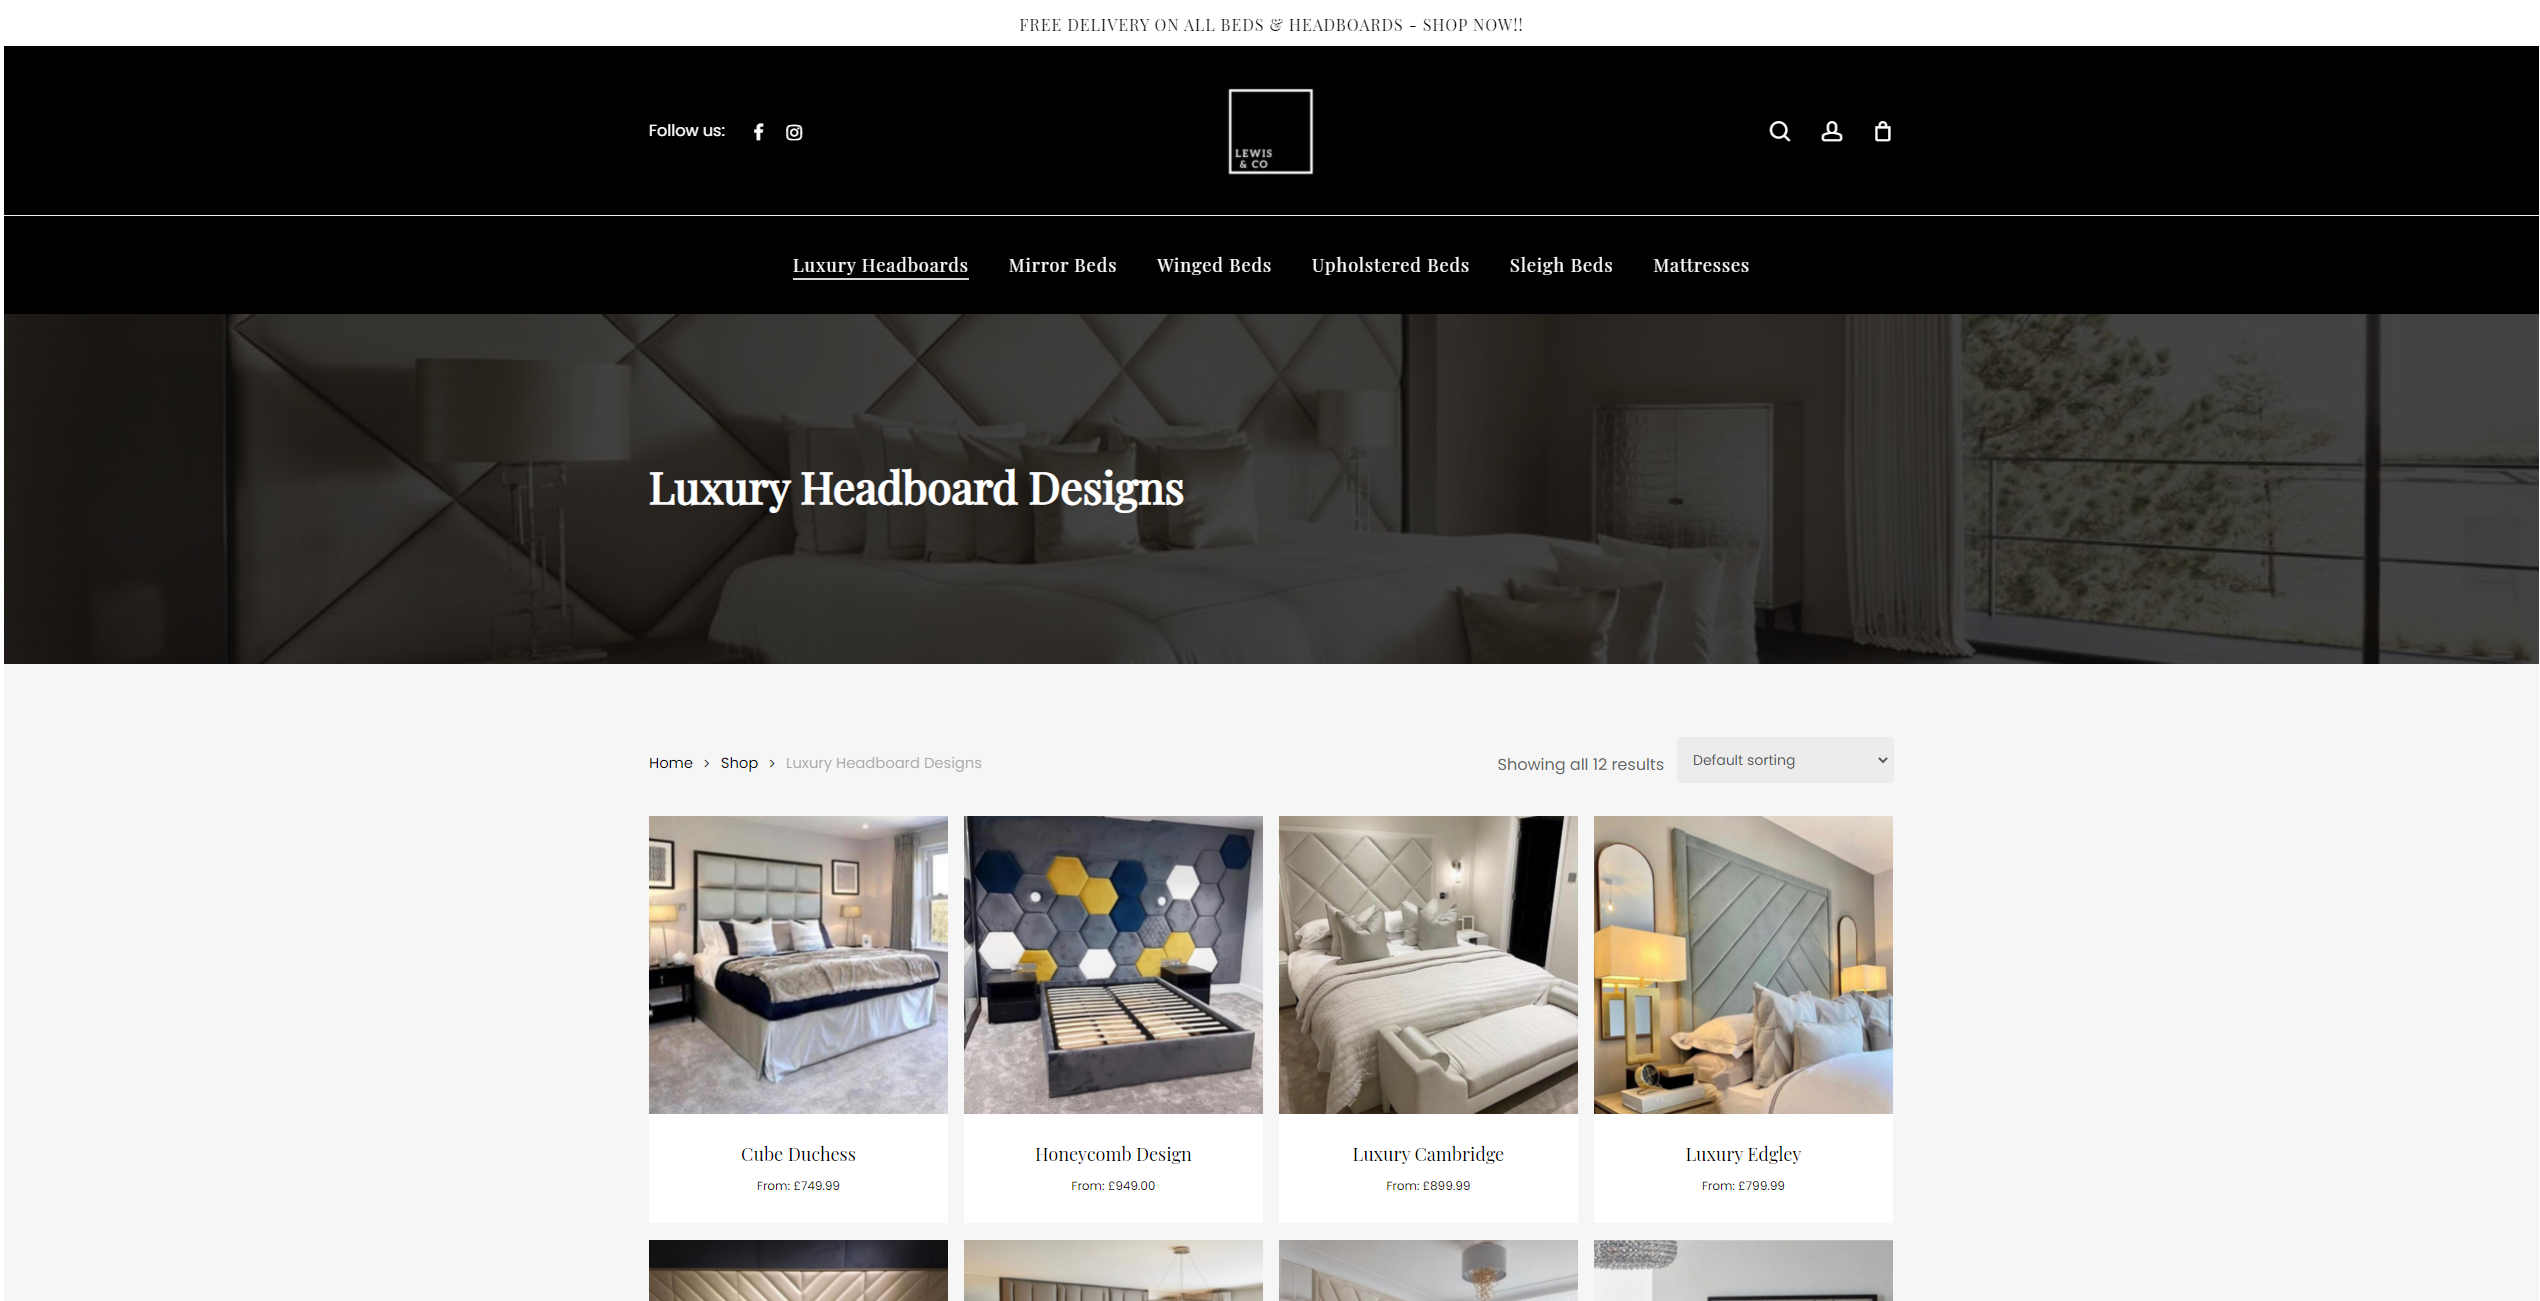 Lewis & Co Beds